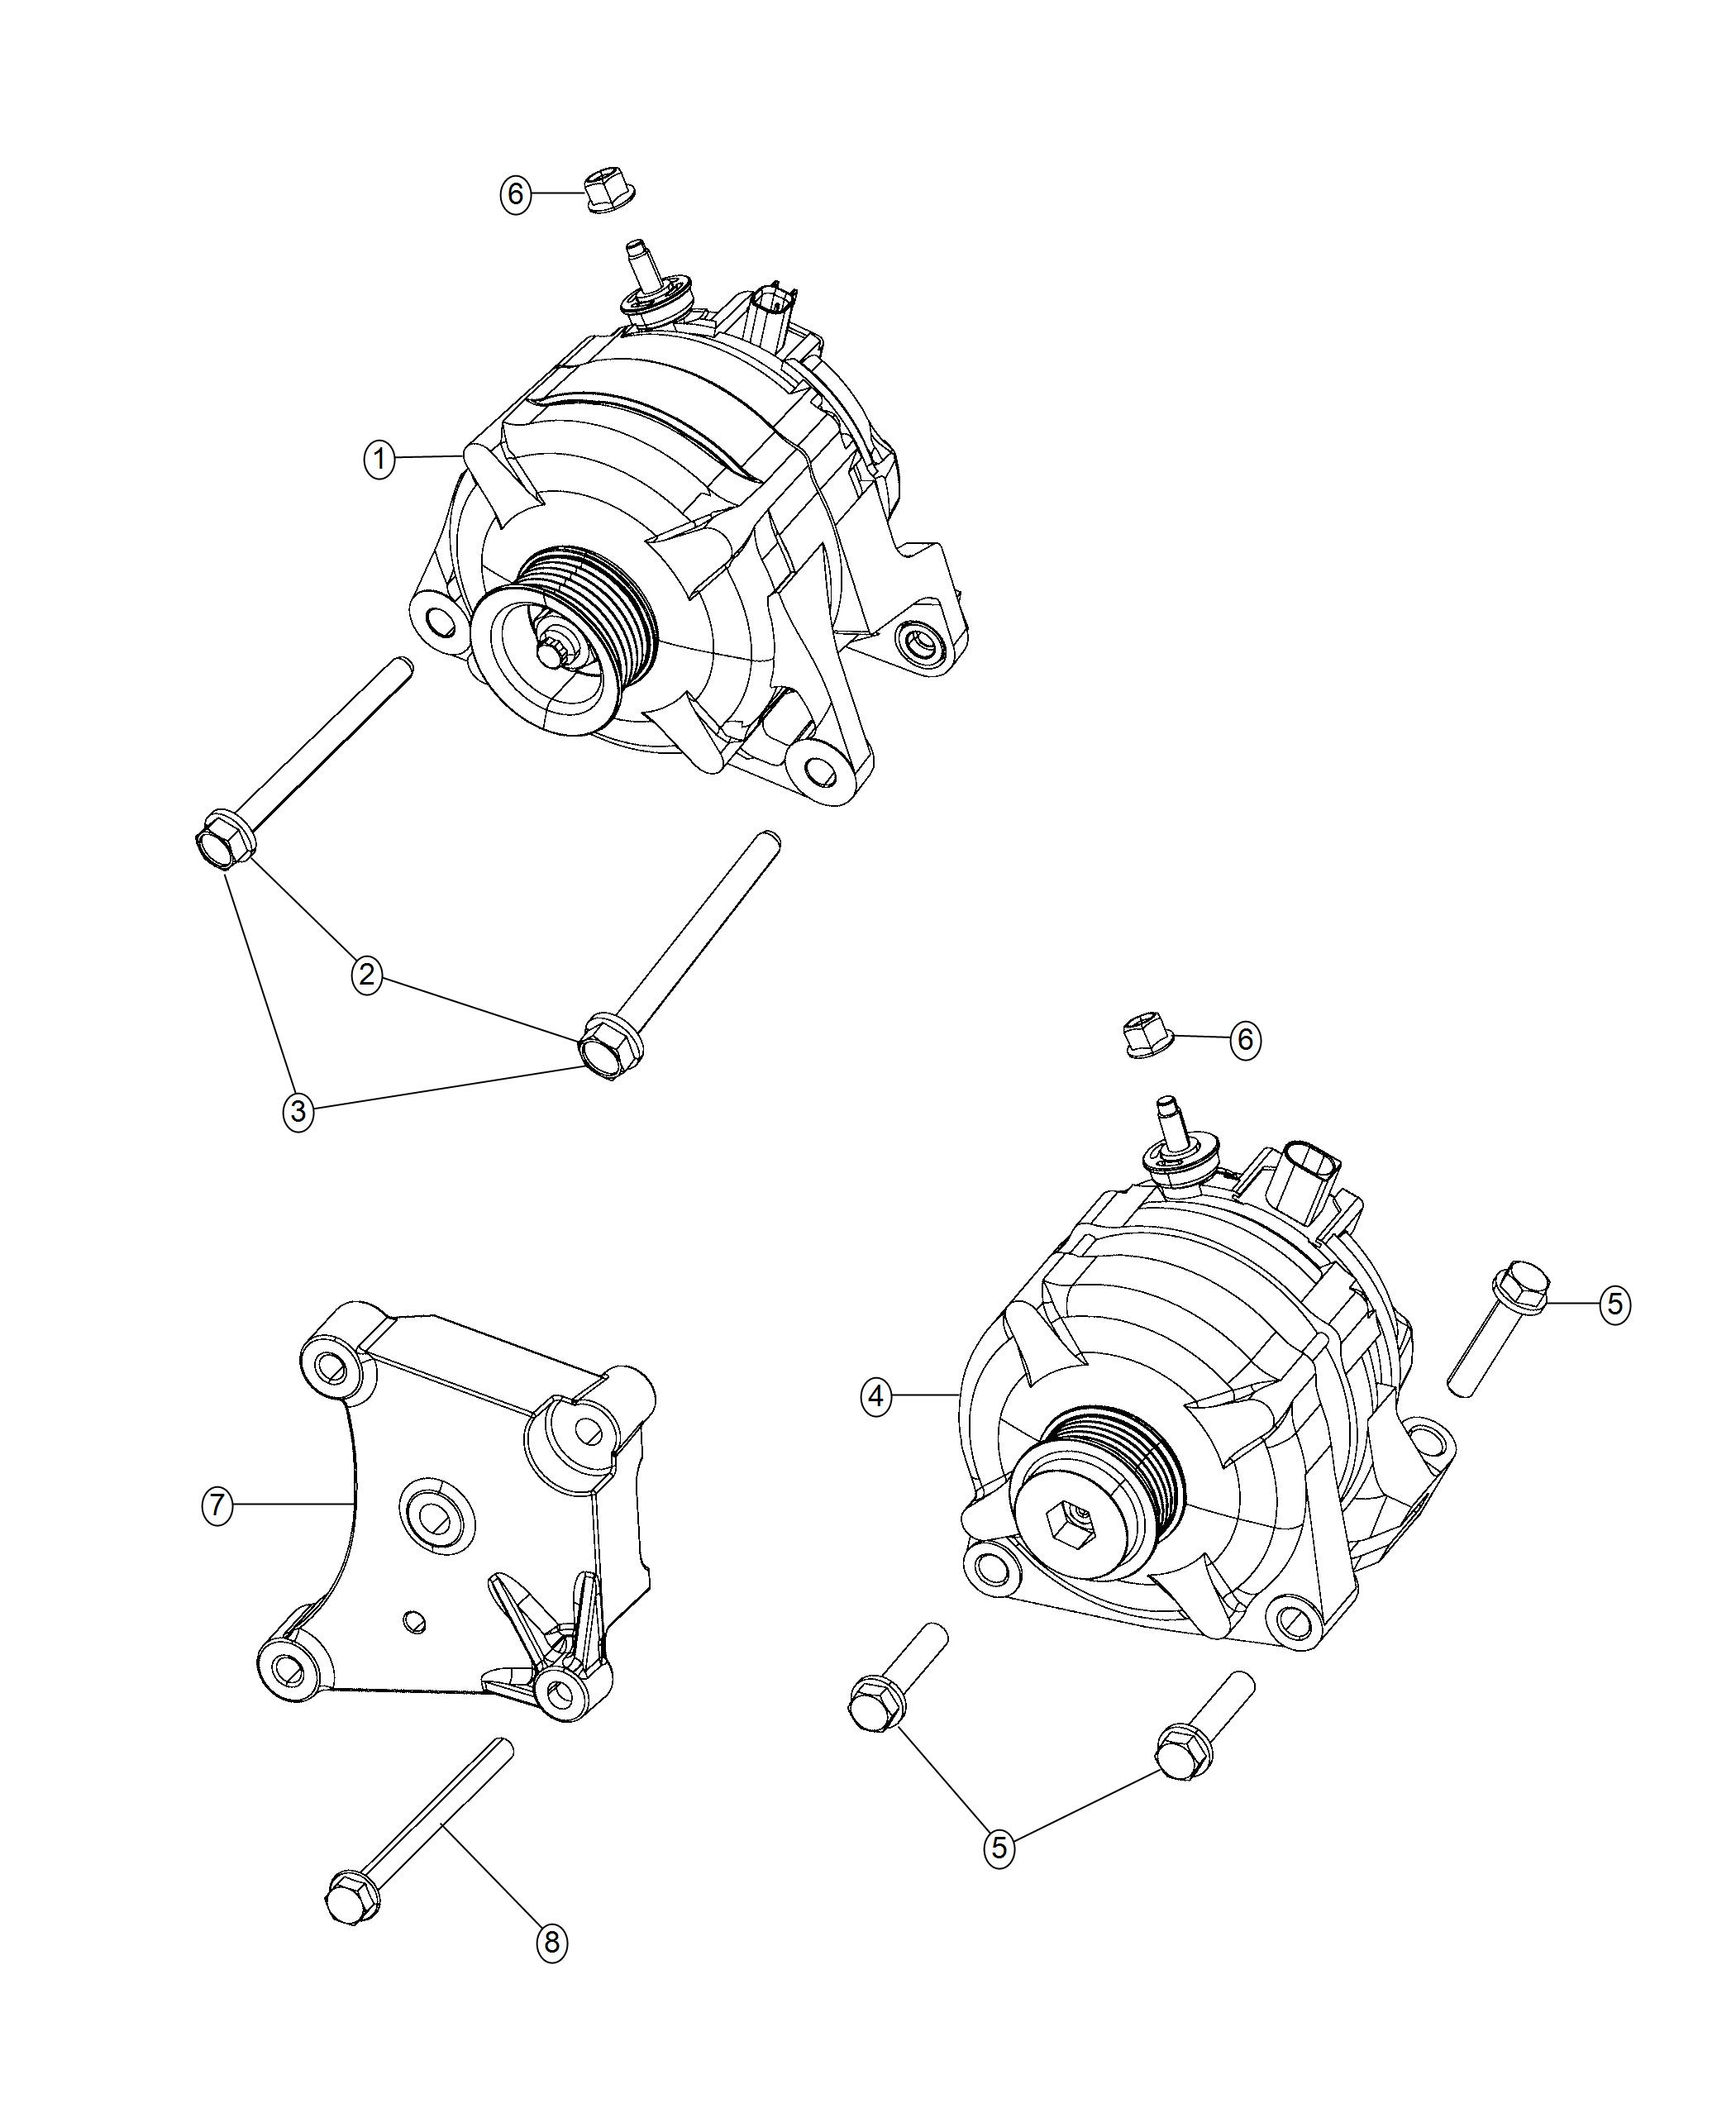 Generator/Alternator. Diagram